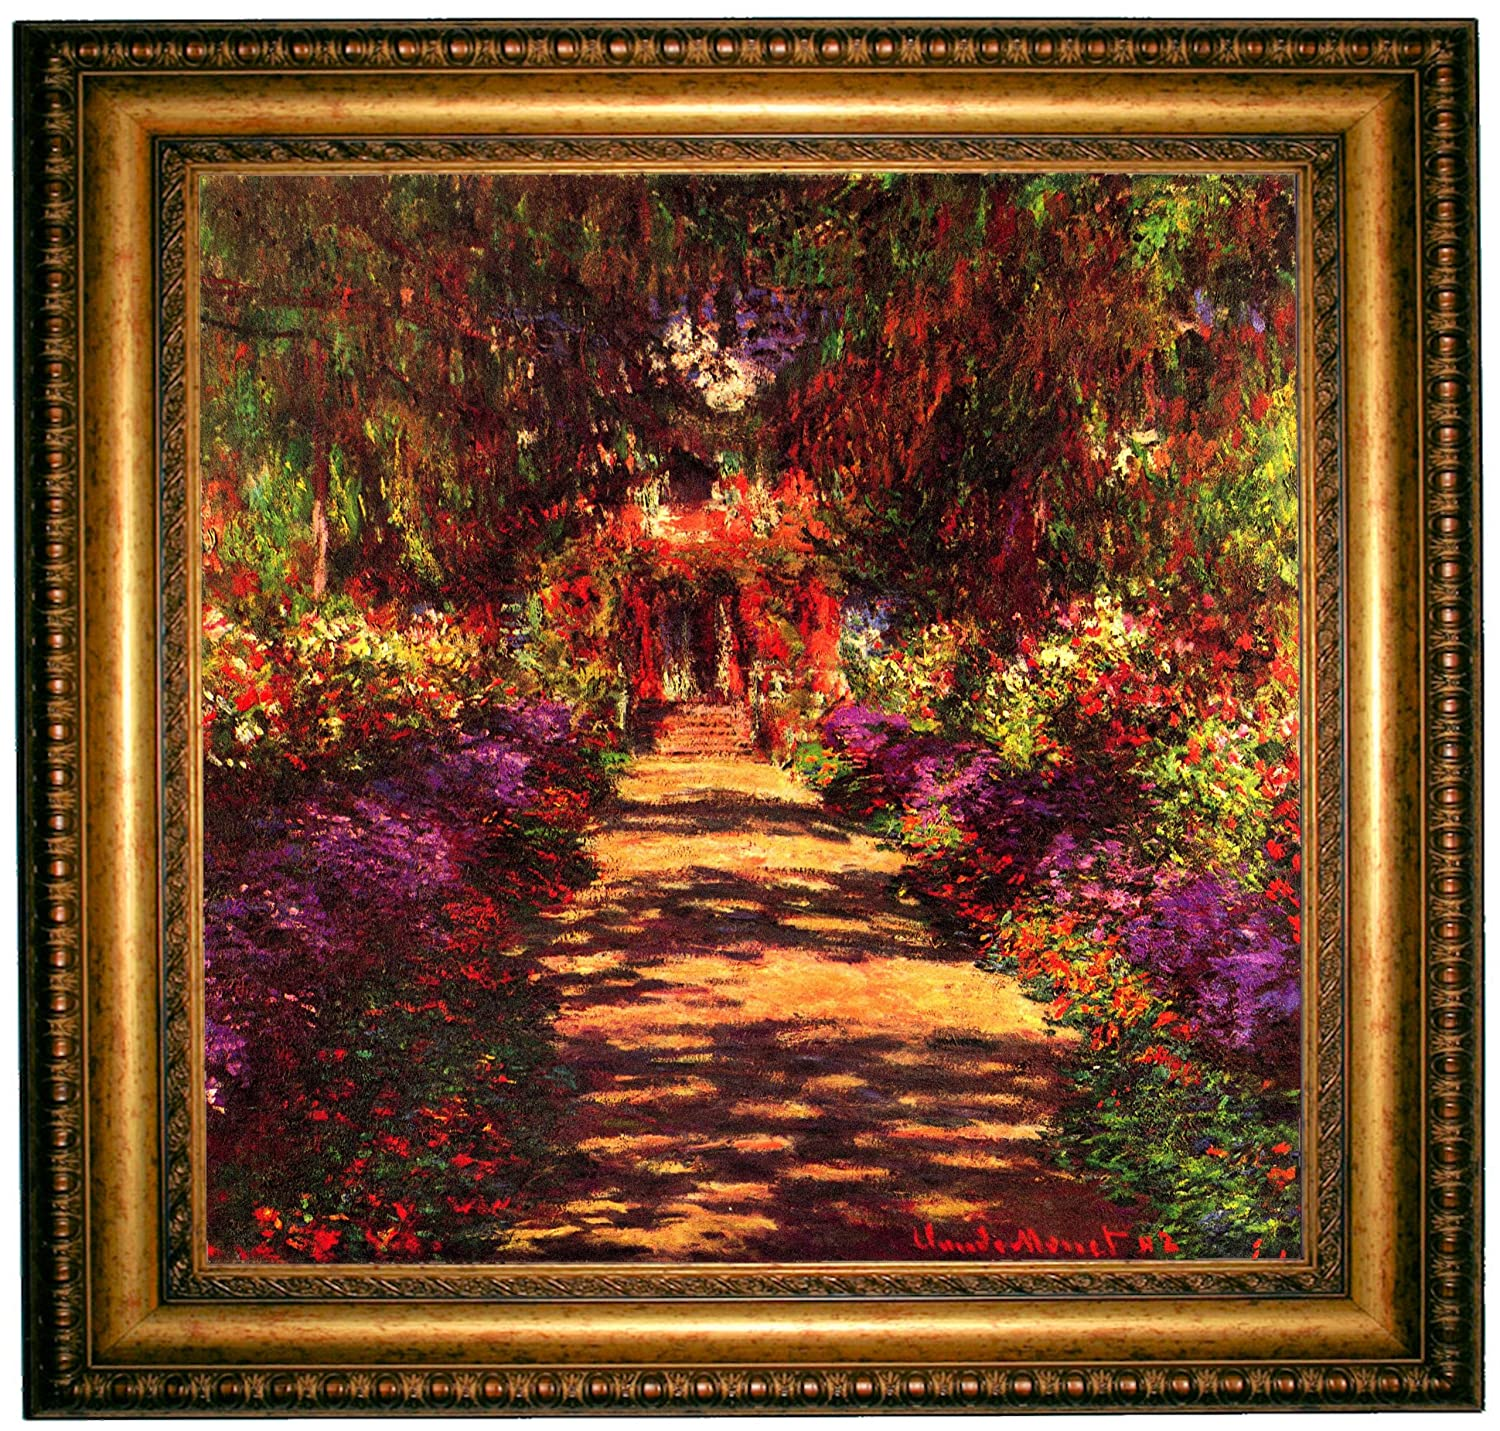 Amazon.com: Monet Path in Monets Garden in Giverny - Gold Framed ...